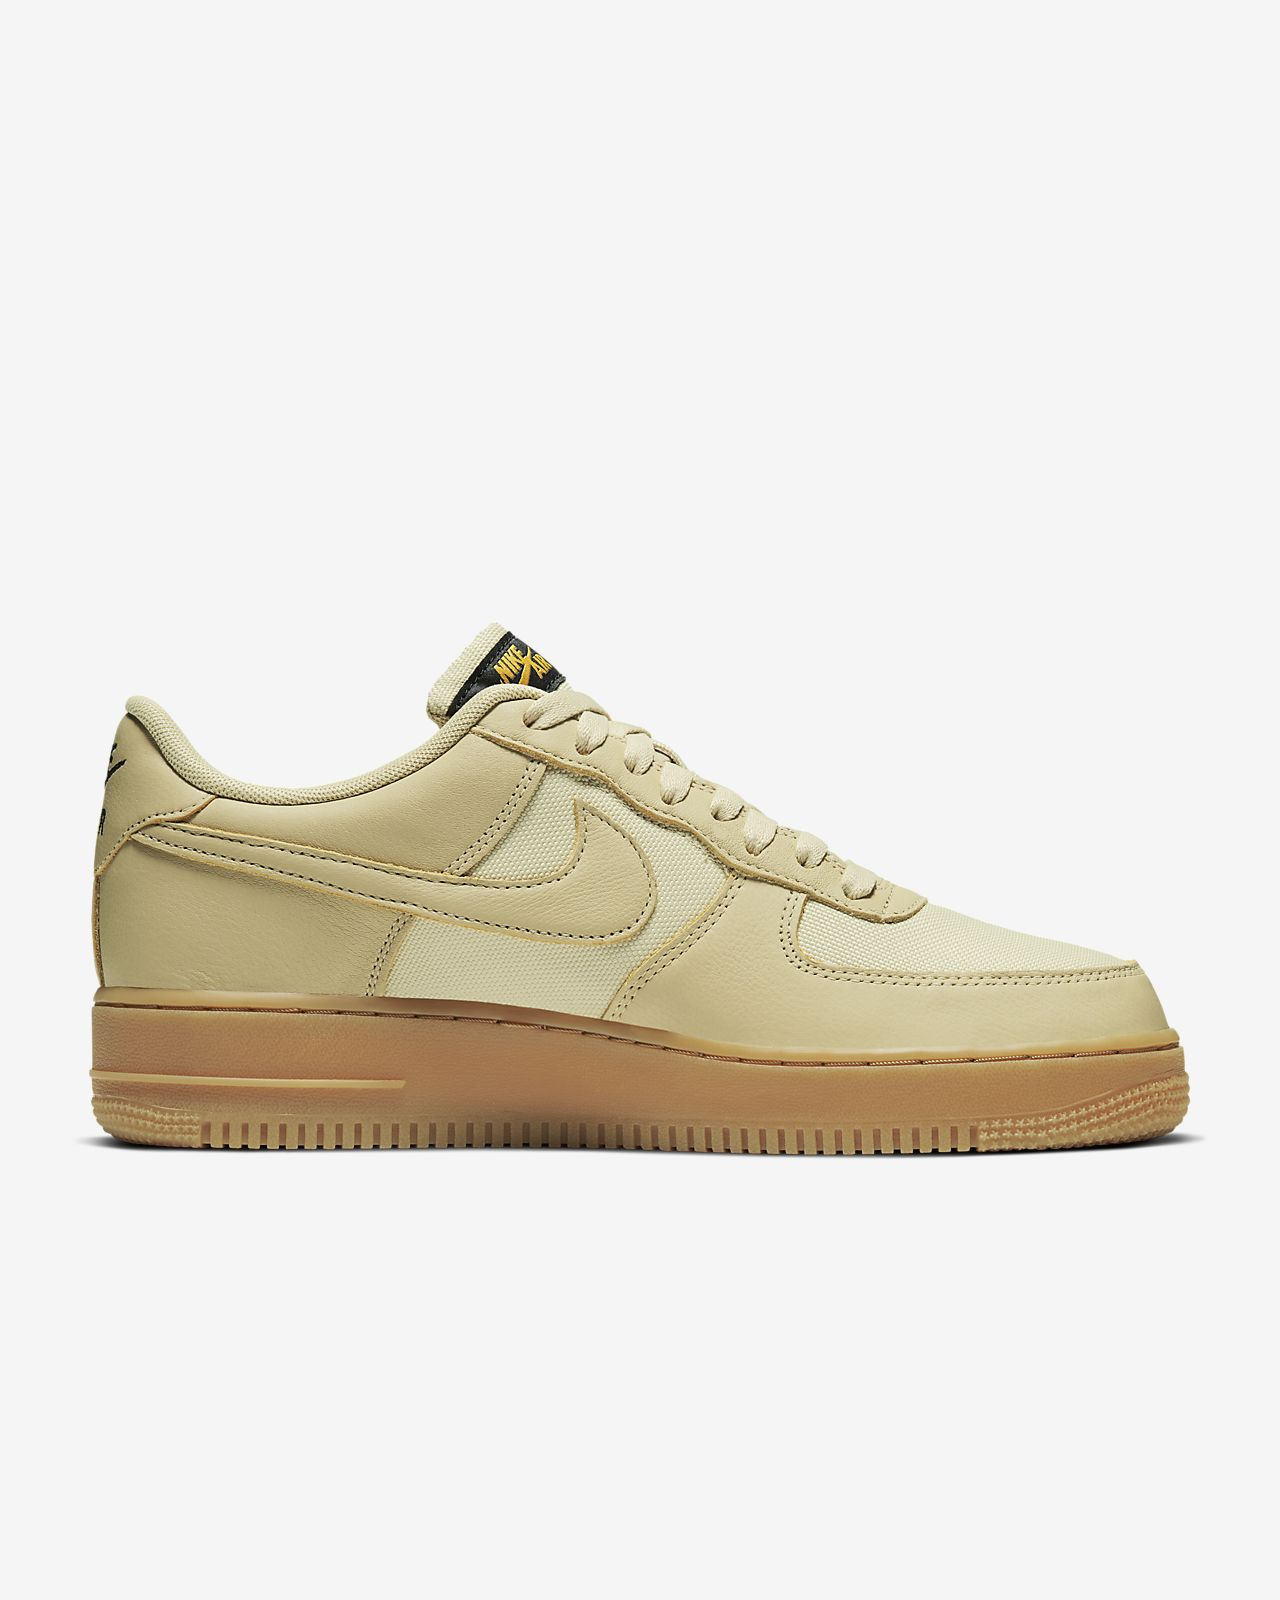 Nike Air Force 1 GORE TEX cipő. Nike HU